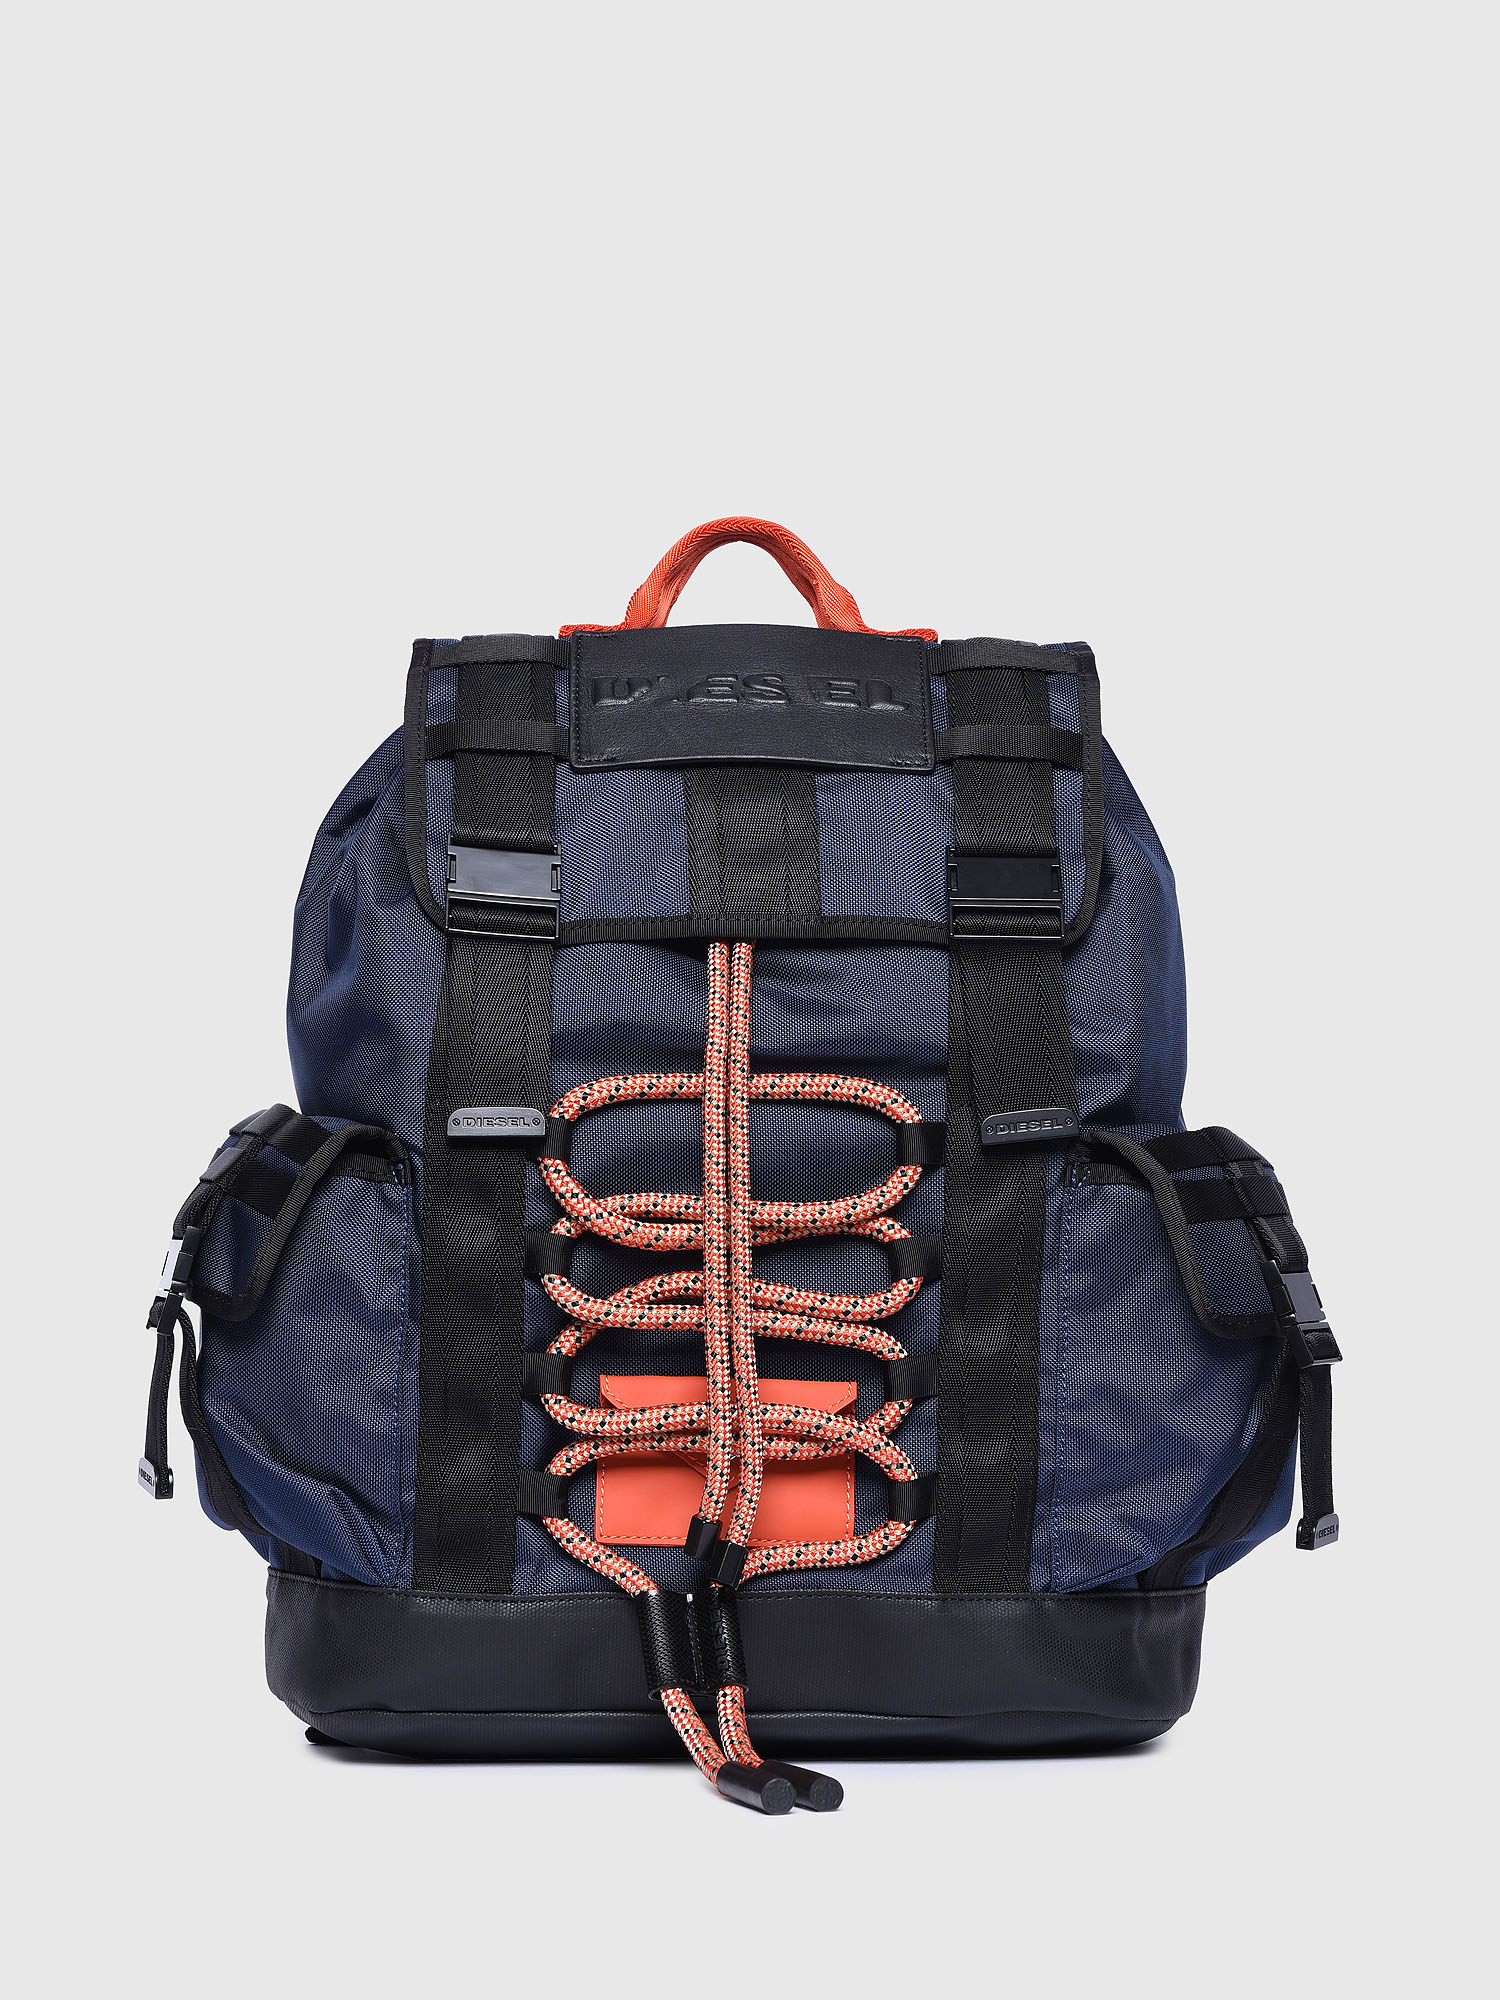 Diesel Backpacks P0881 - Blue